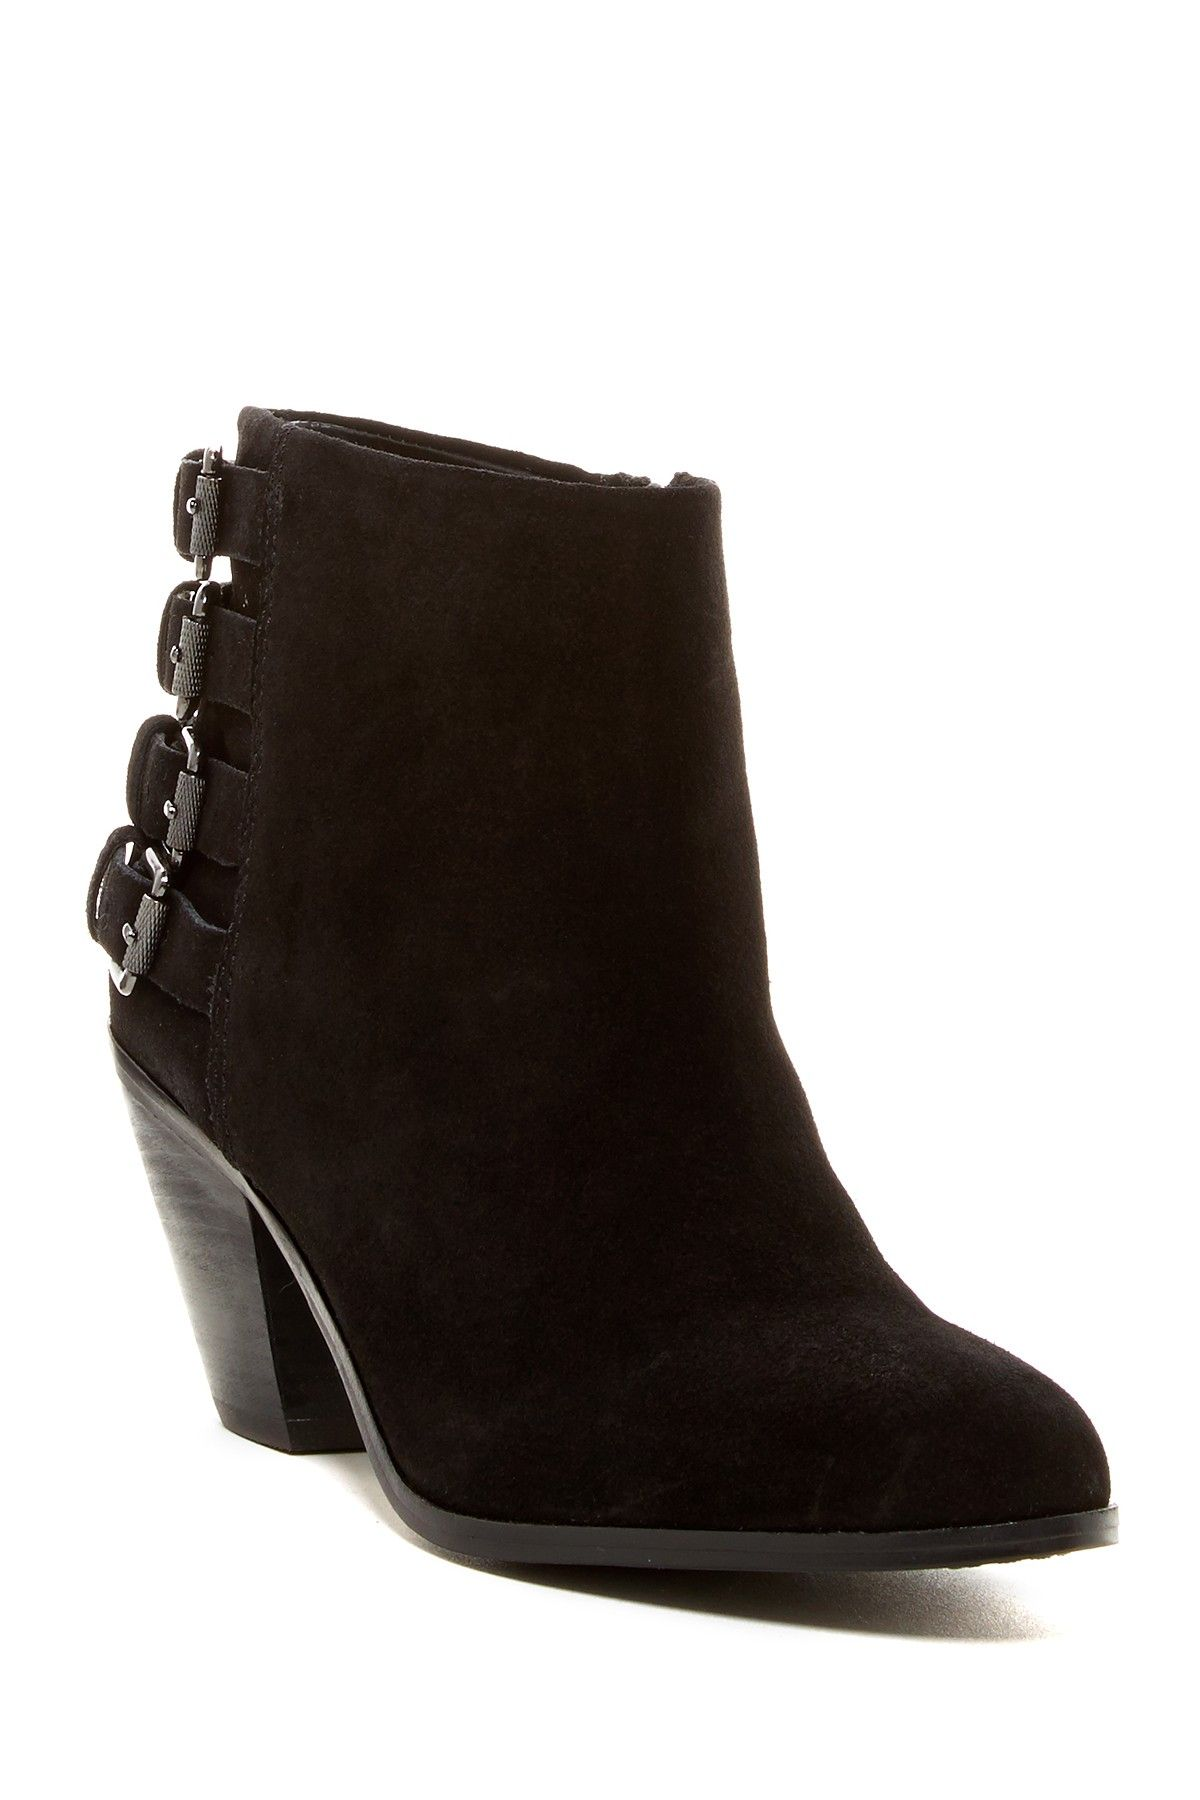 8adc1abe5 Lucca Suede Buckle Bootie